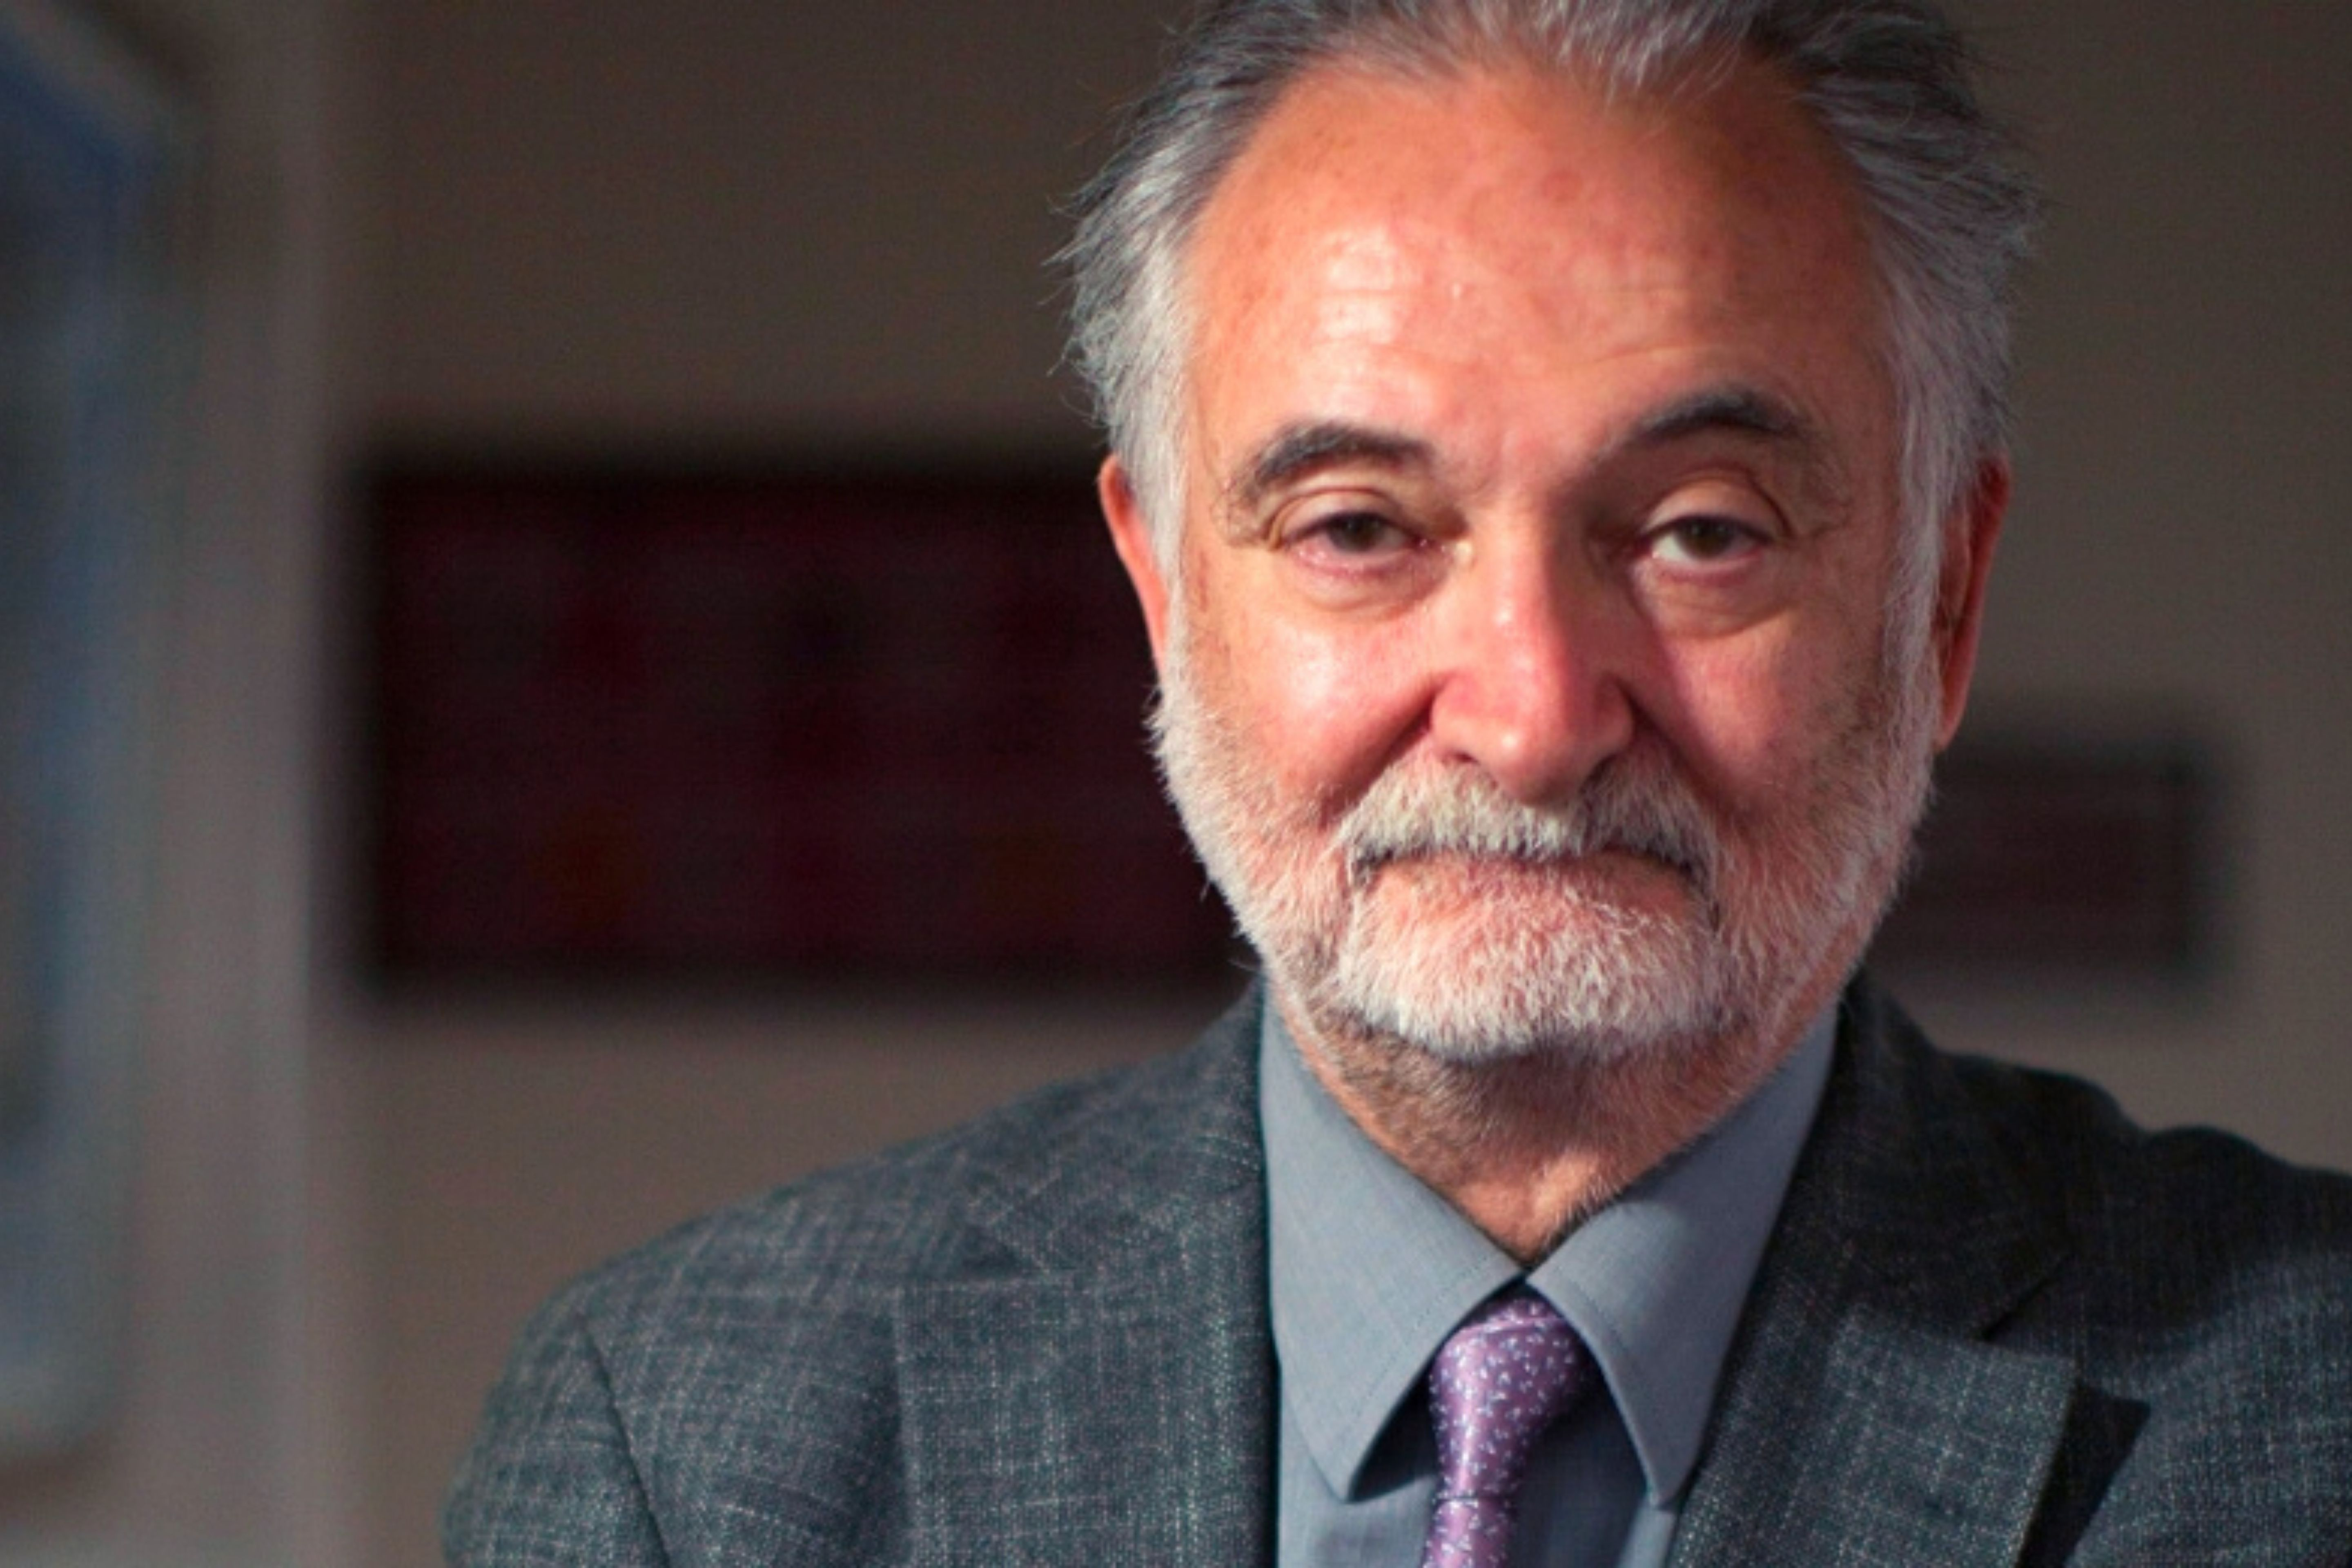 Famous economist Jacques Attali gives precious advice to Moroccan Medical Student Ali Taleb.